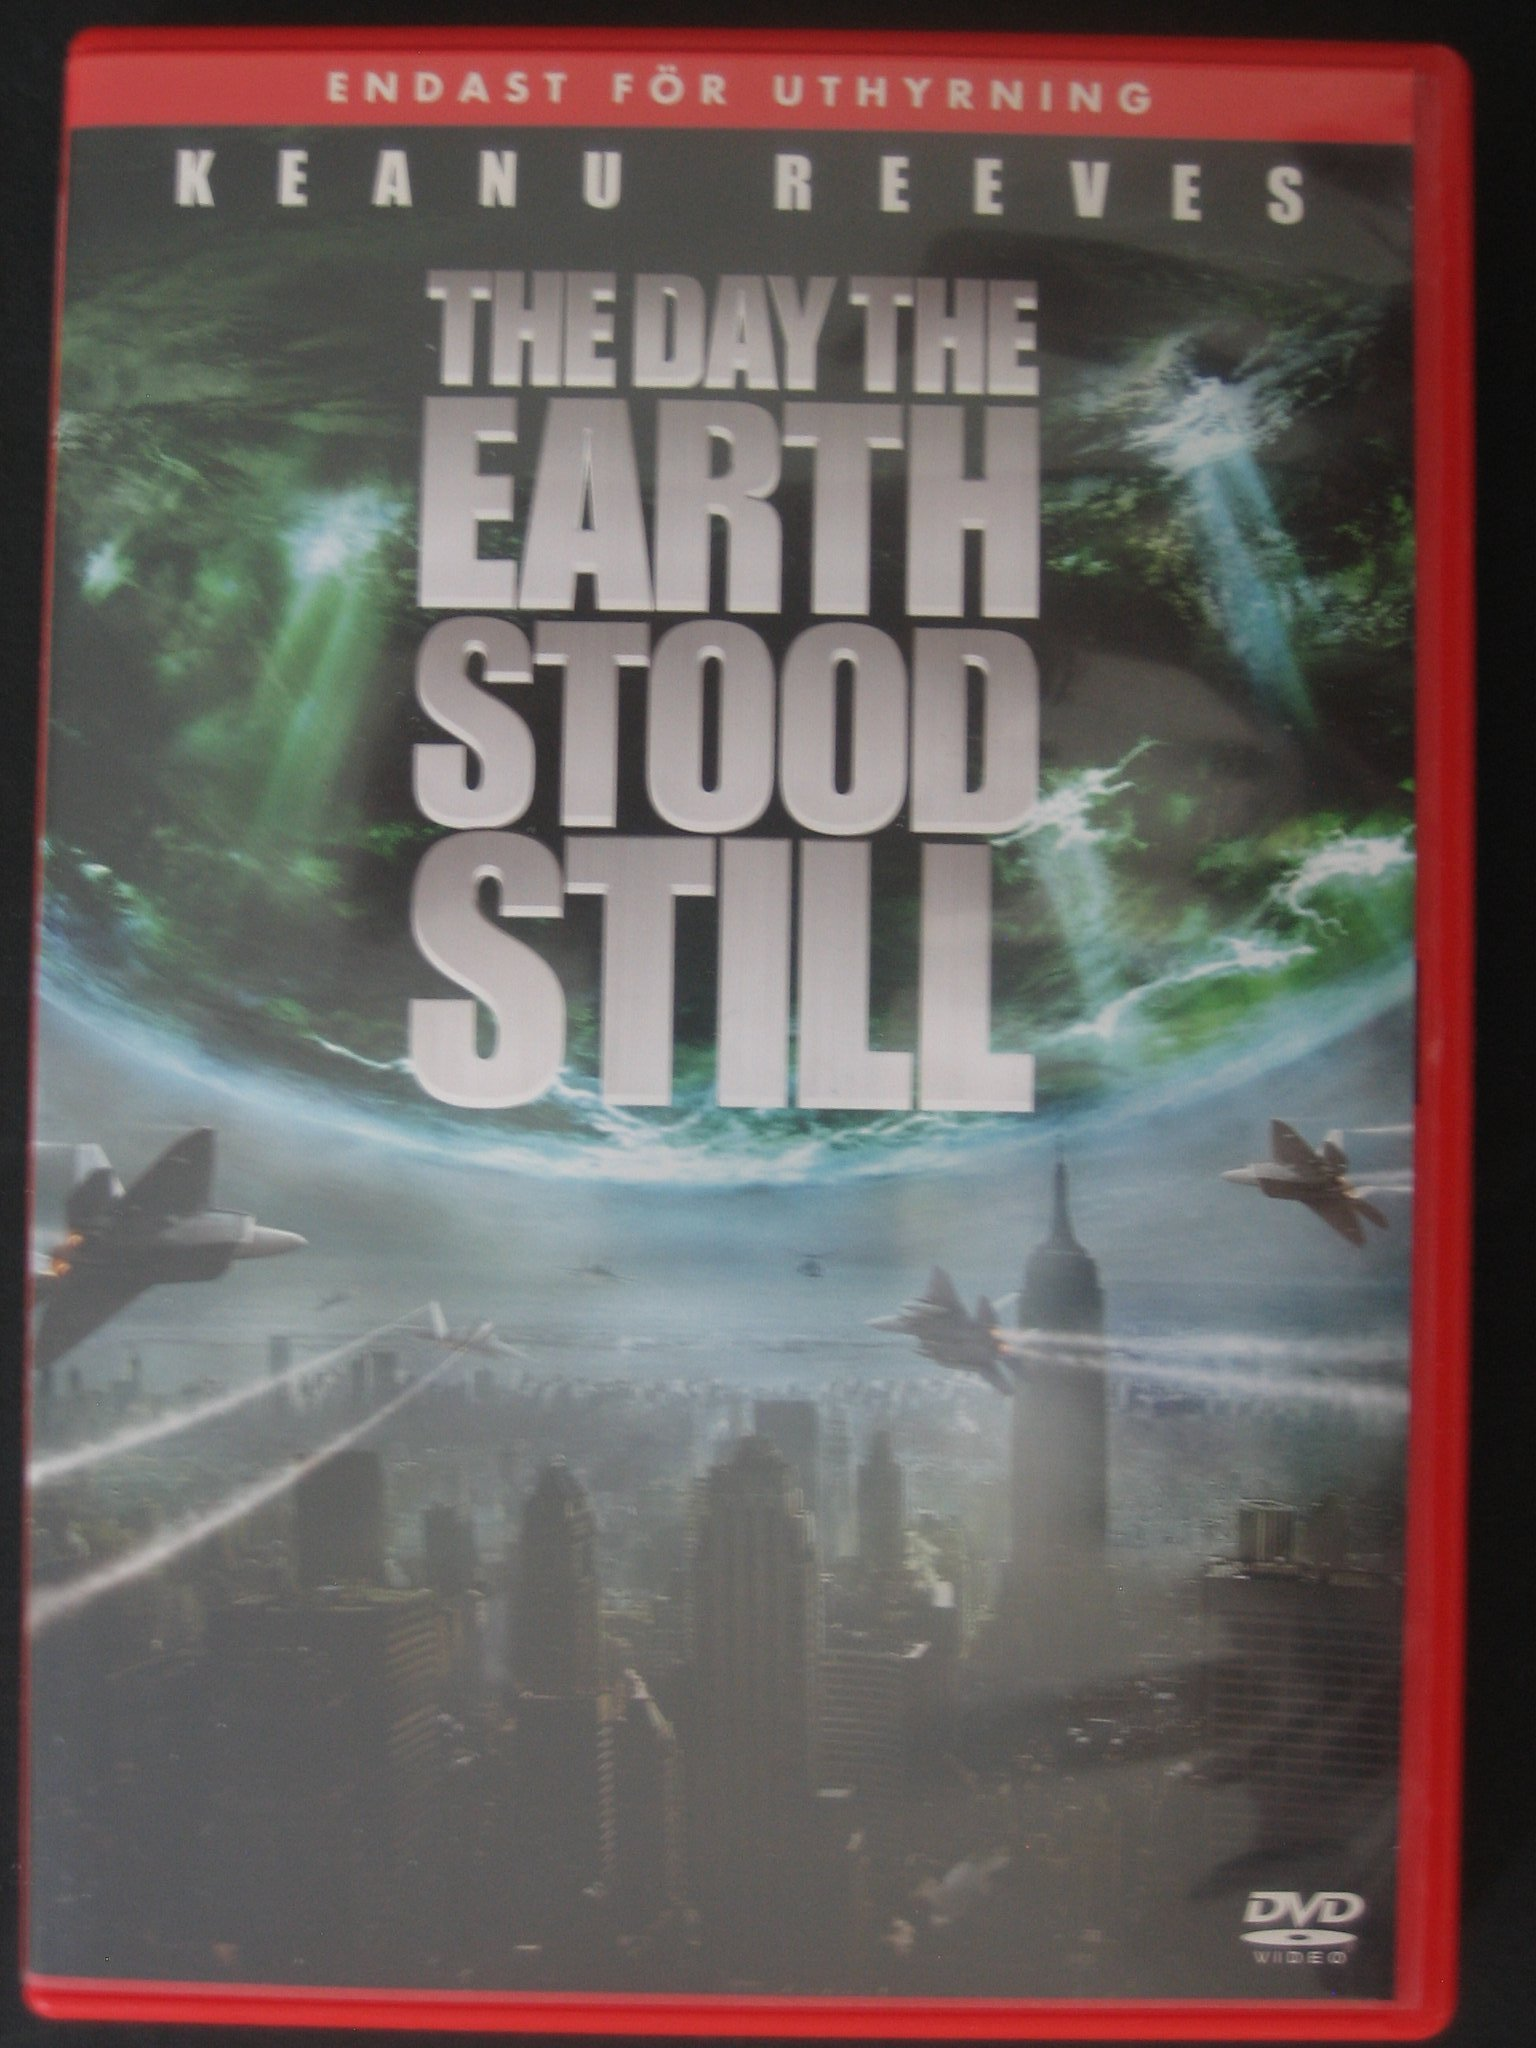 THE DAY THE EARTH STOOD STILL / KEANU REEVES